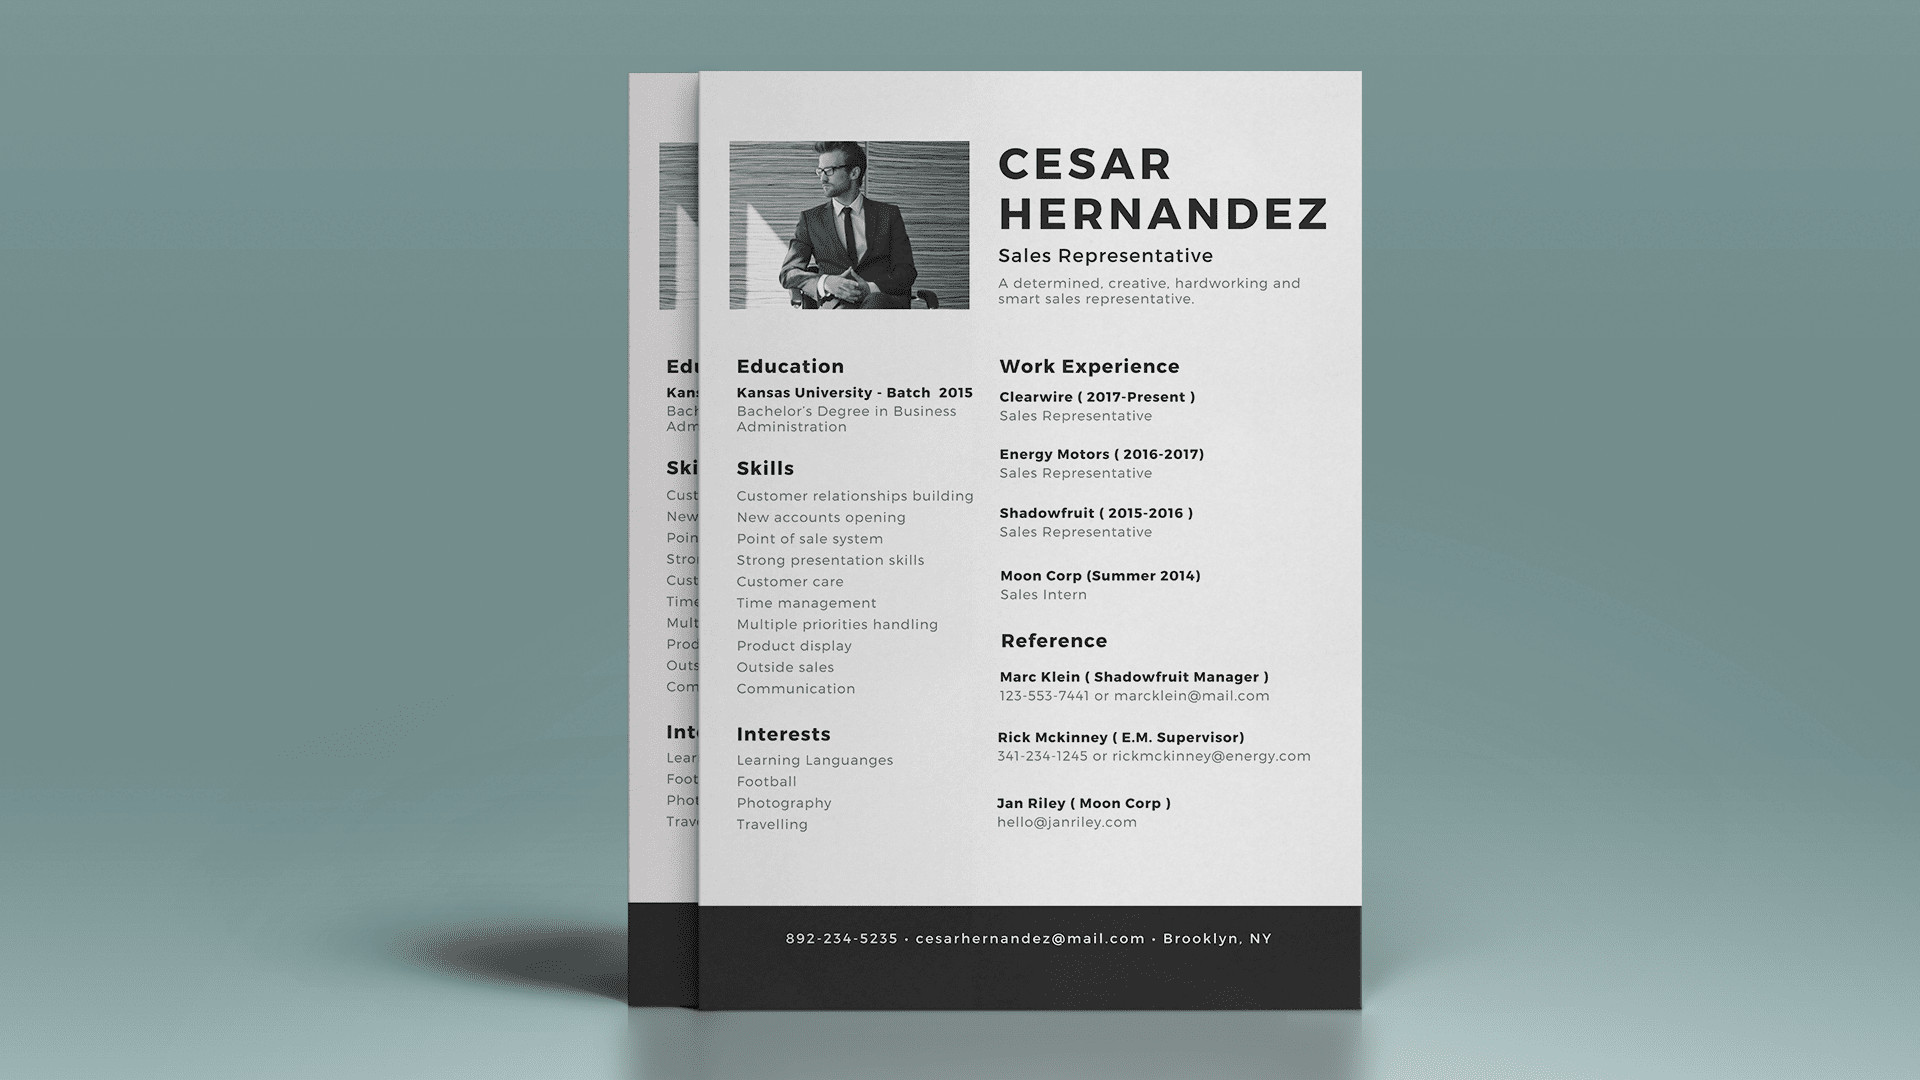 50 inspiring resume designs_featured image (edited)